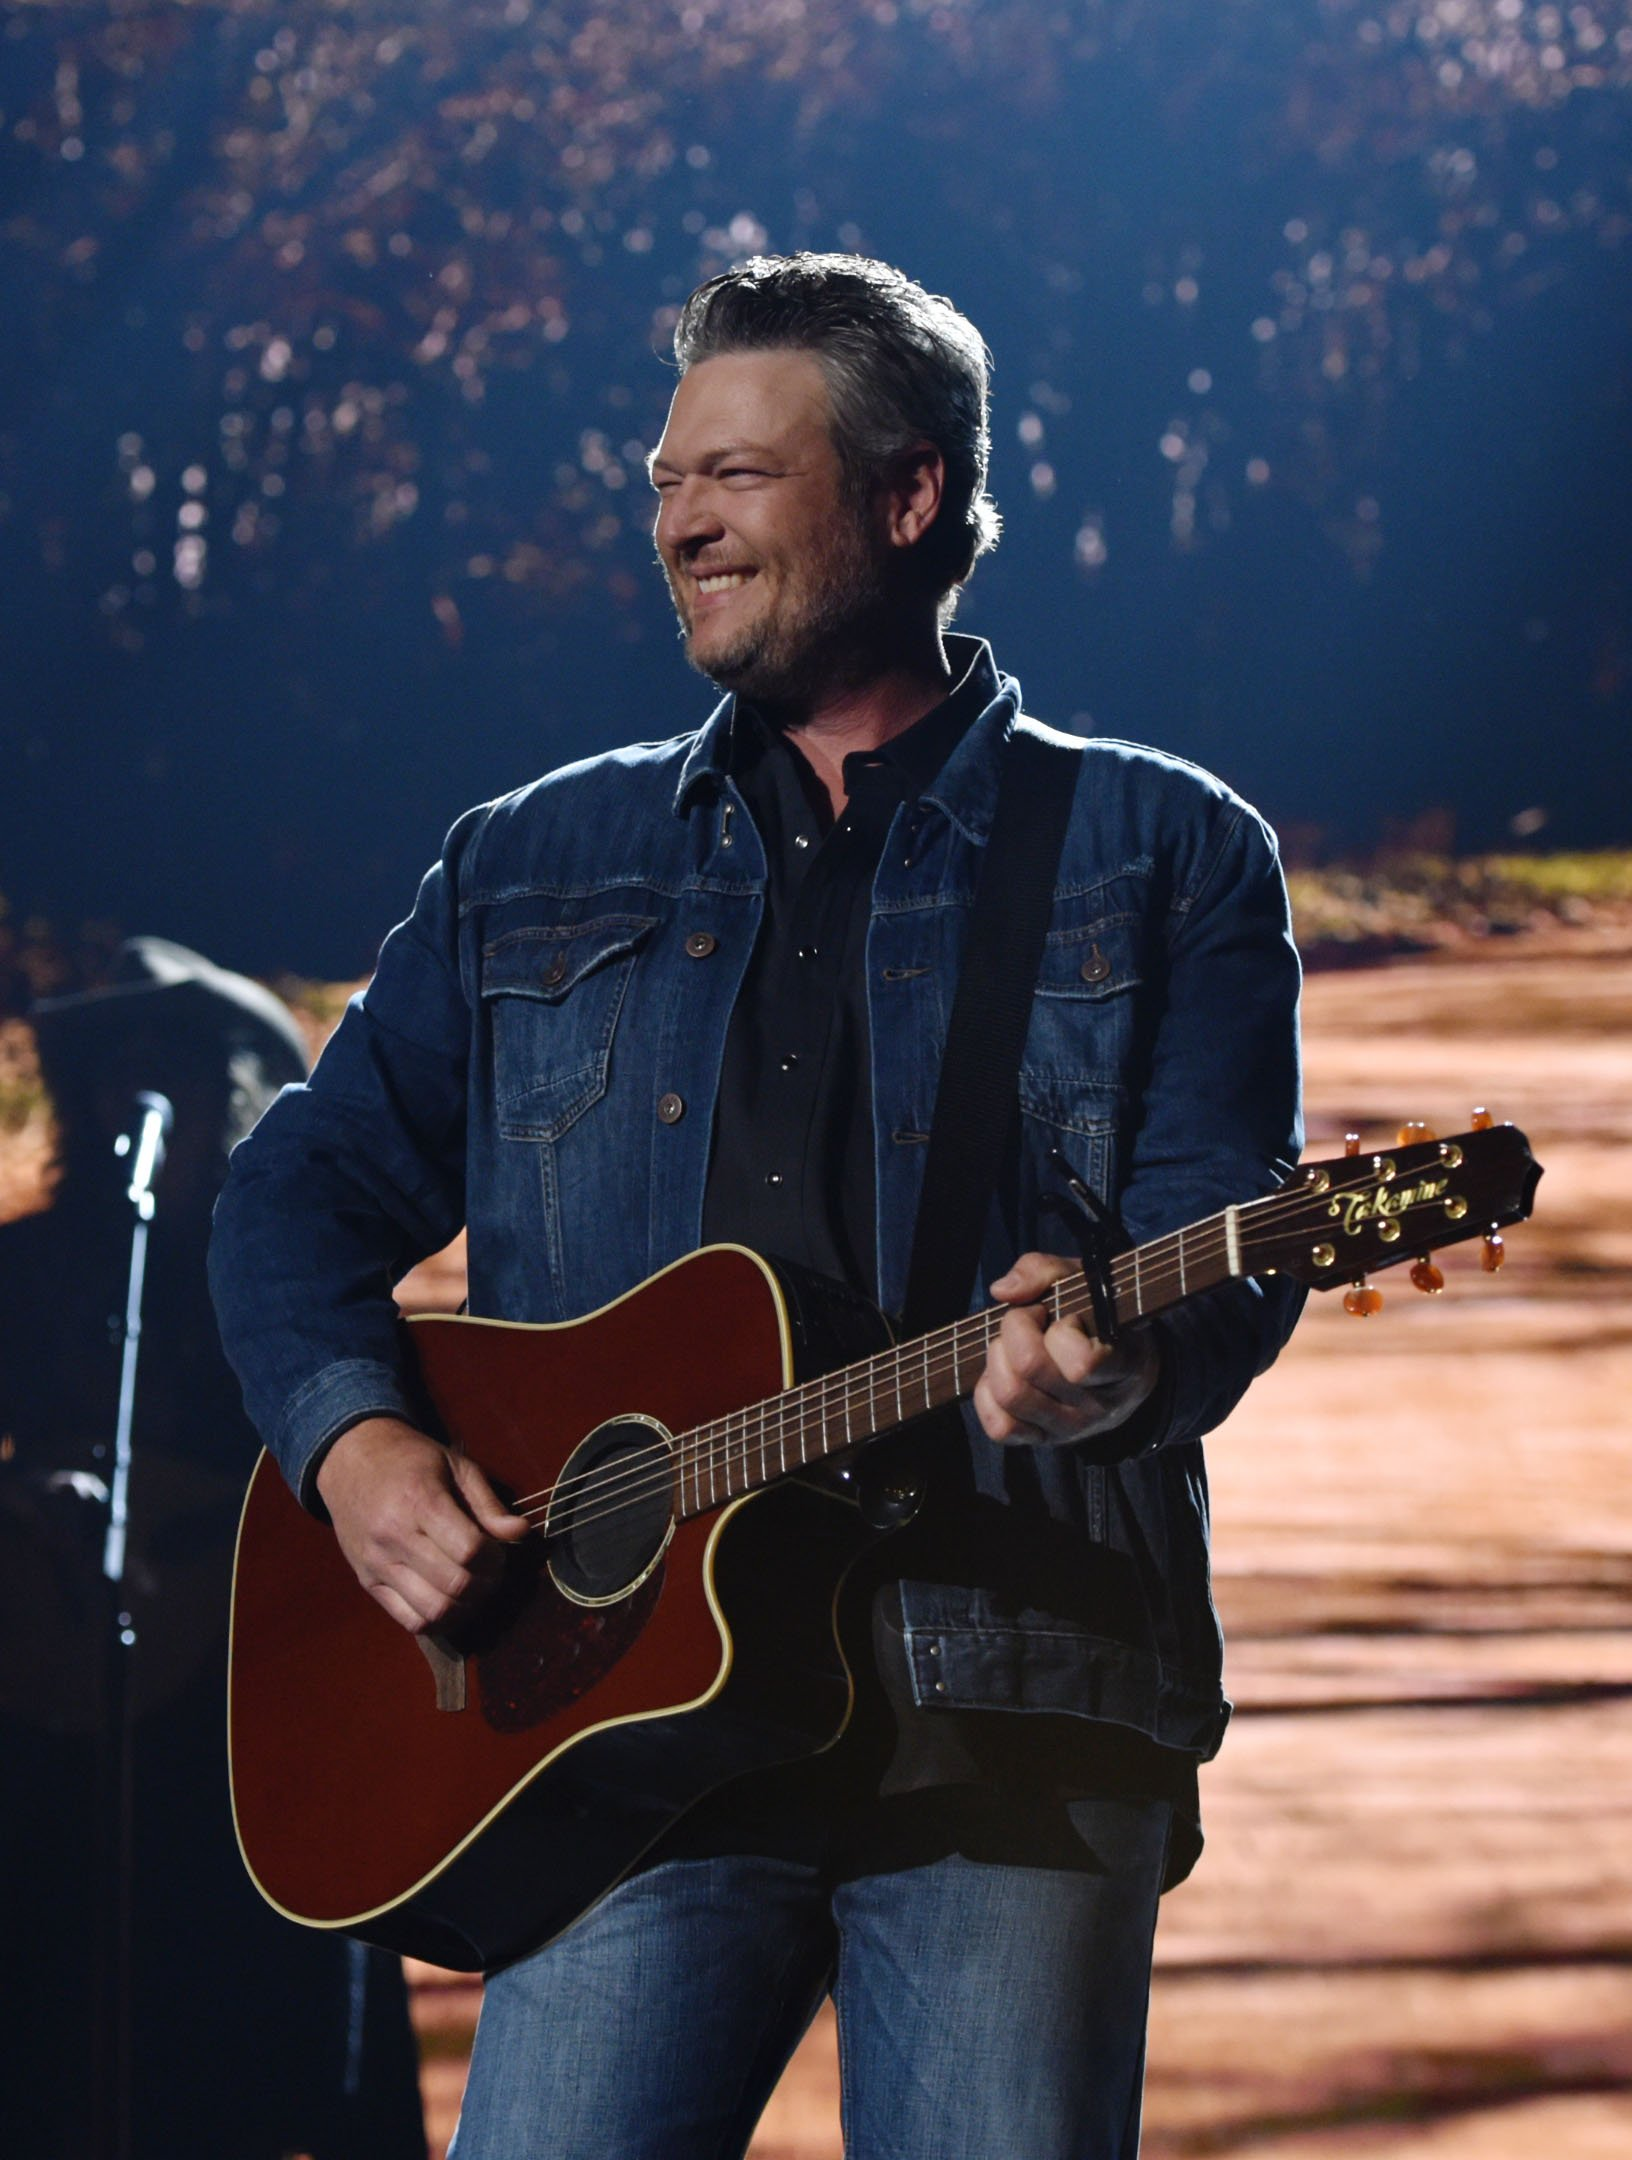 Blake Shelton performs onstage during the 54th Academy Of Country Music Awards at MGM Grand Garden Arena on April 07, 2019, in Las Vegas, Nevada | Photo: Getty images